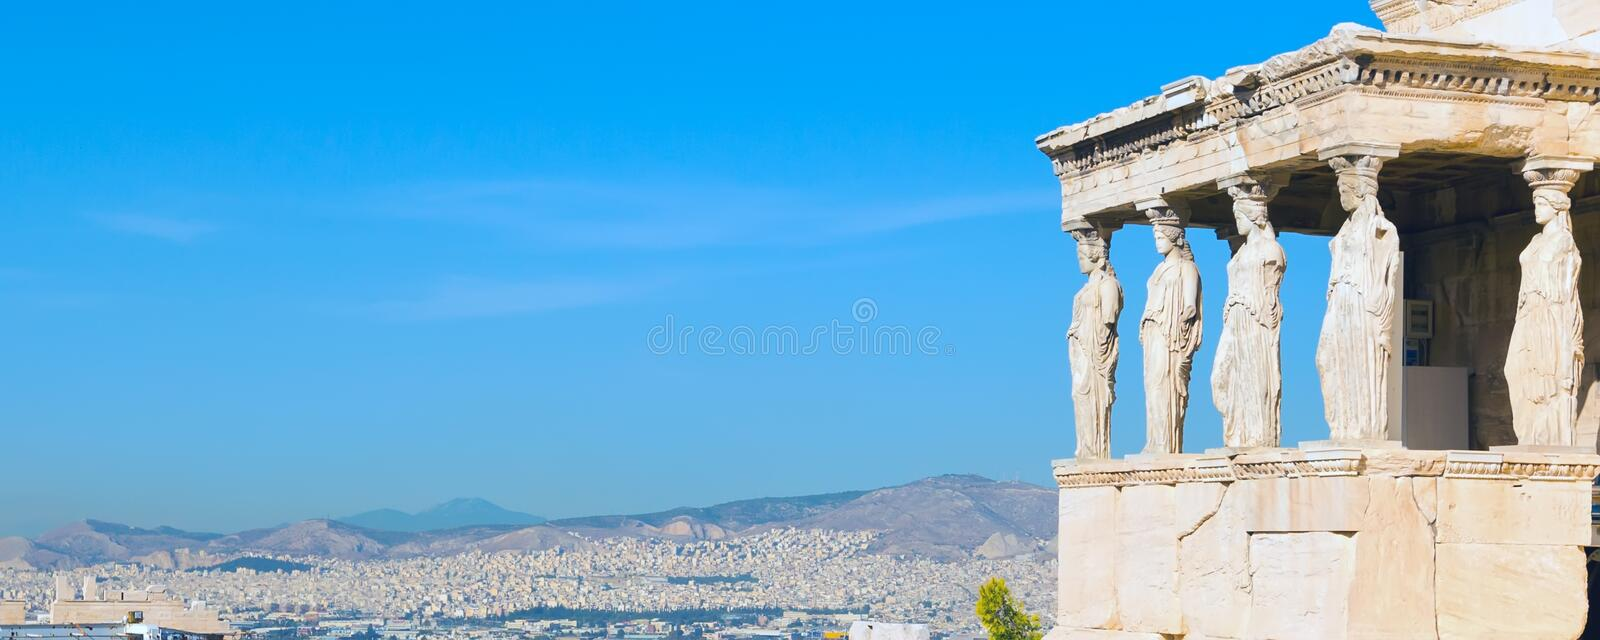 Acropolis, Erechtheum Temple in Athens, Greece. Banner panoramic background with Acropolis, Erechtheum Temple in Athens, Greece and blue sky stock photo